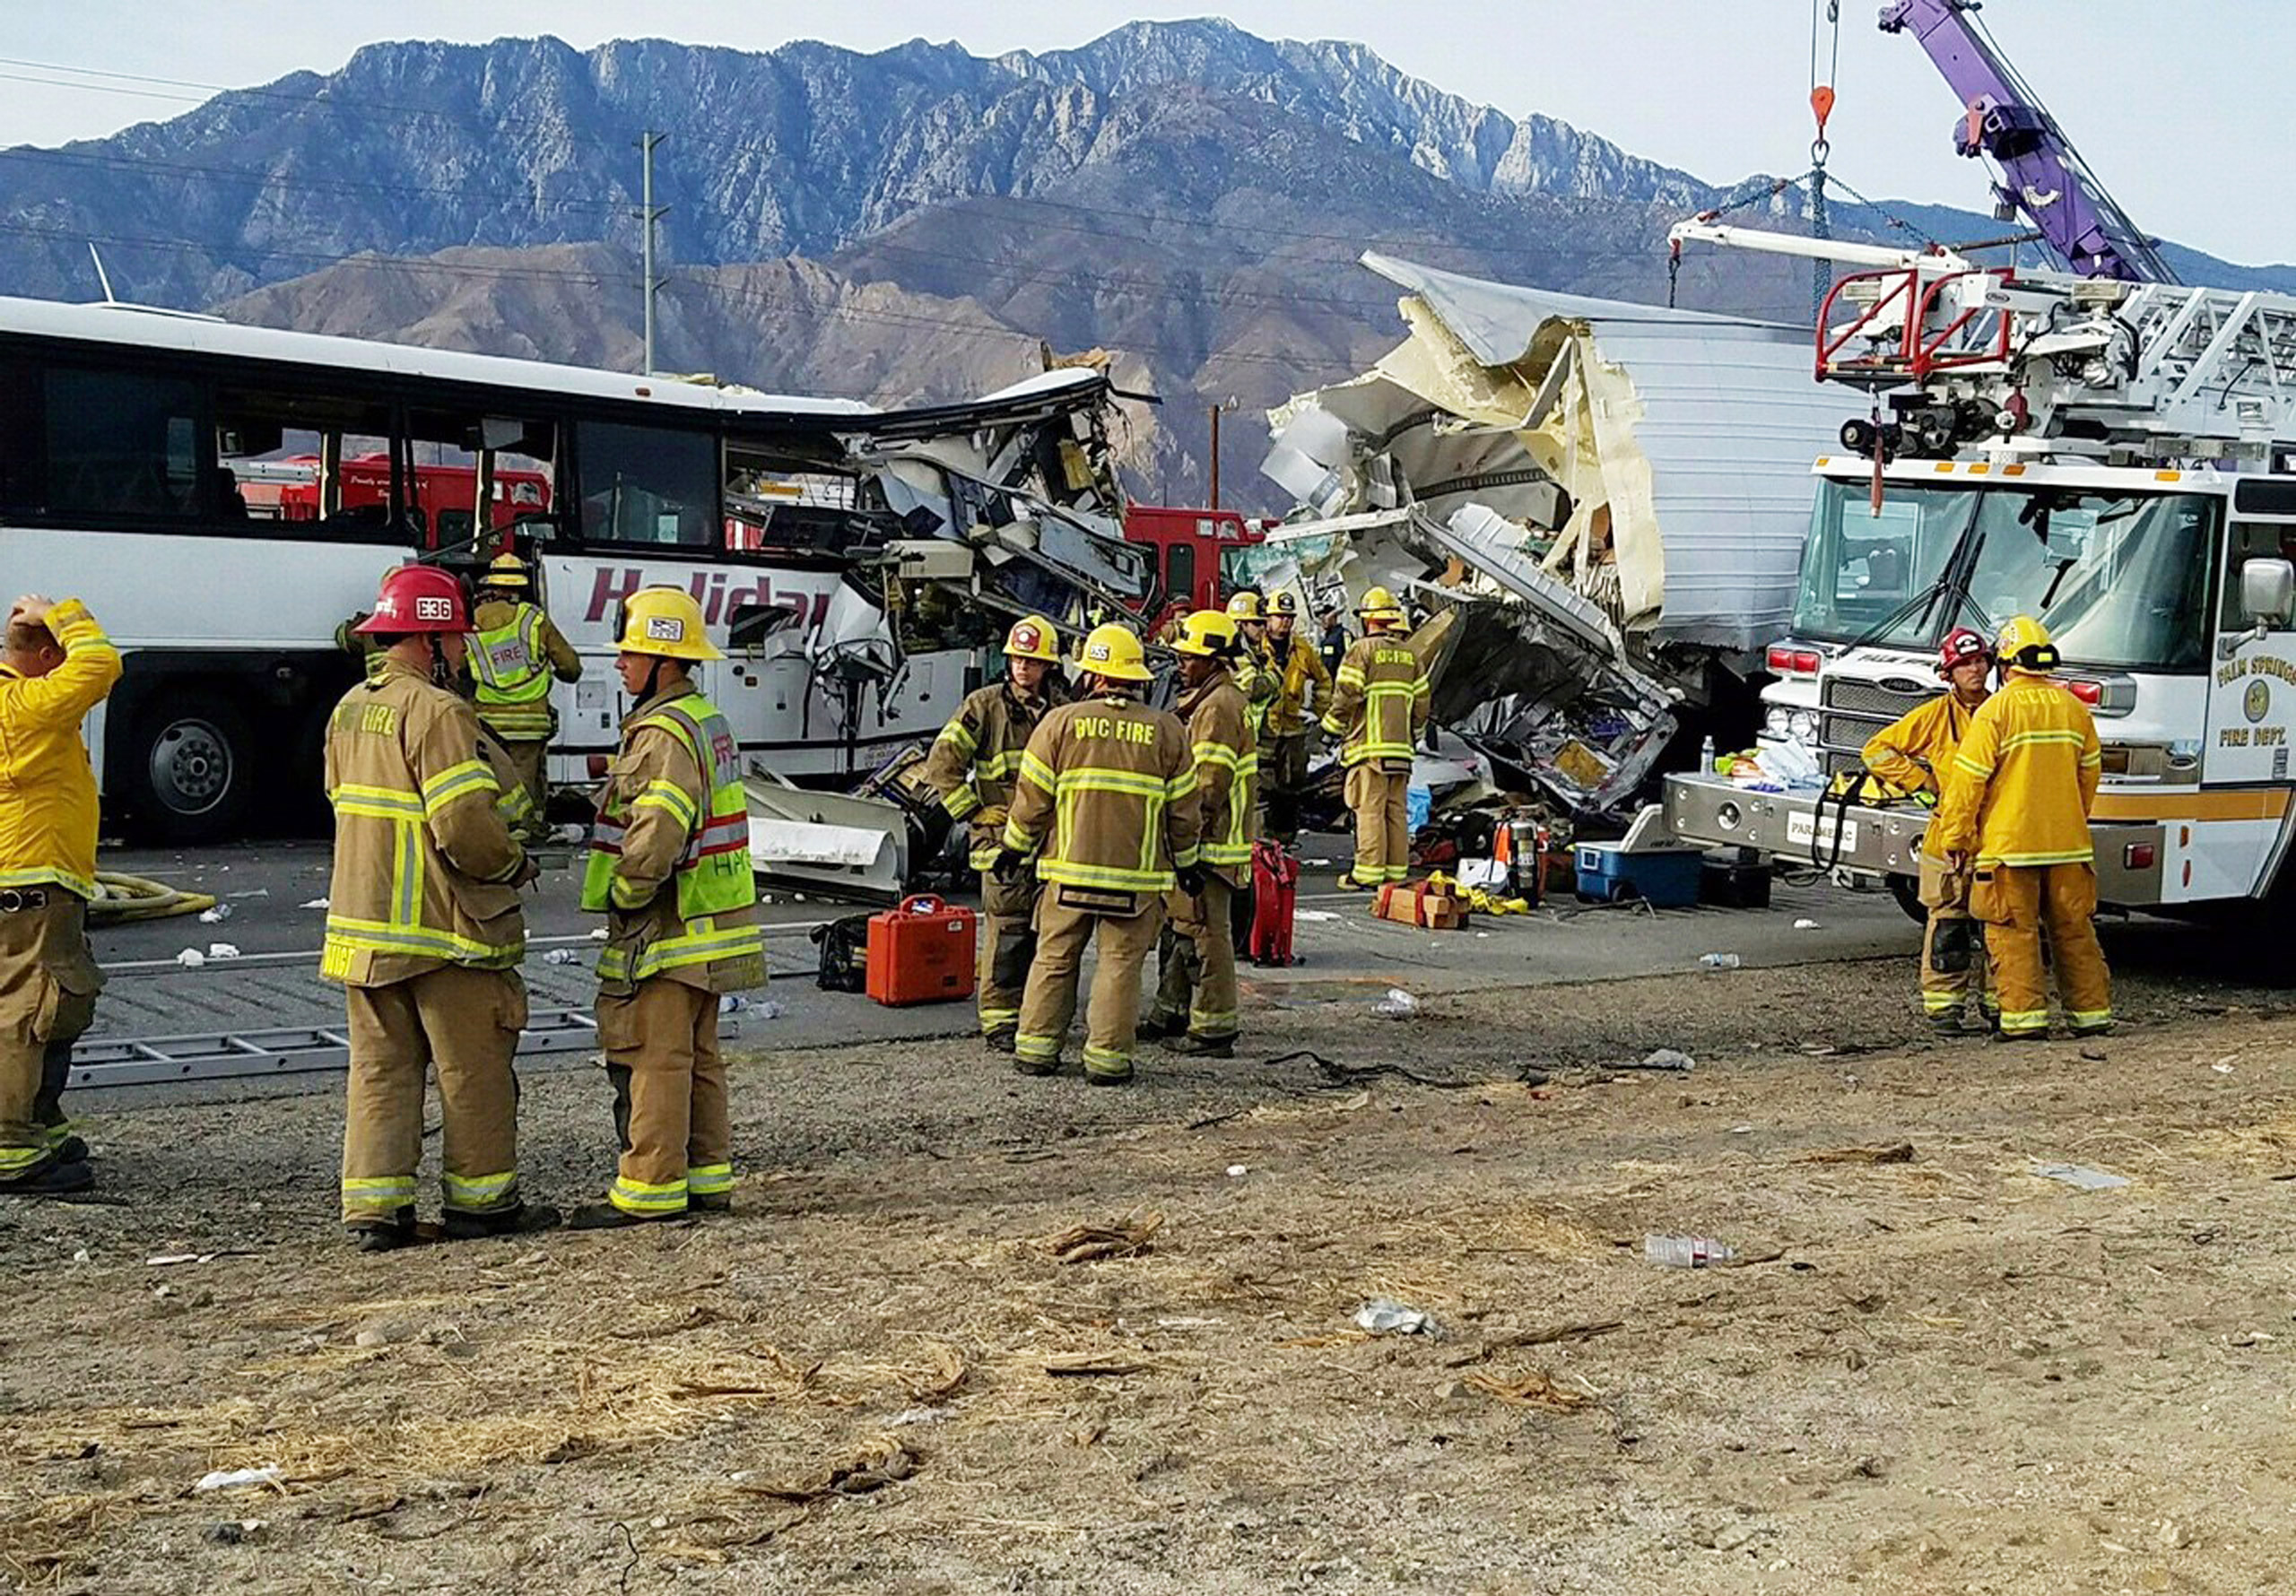 The scene of crash between a tour bus and a semi-truck crashed on Interstate 10 near Desert Hot Springs, near Palm Springs, Calif., on Oct. 23, 2016.